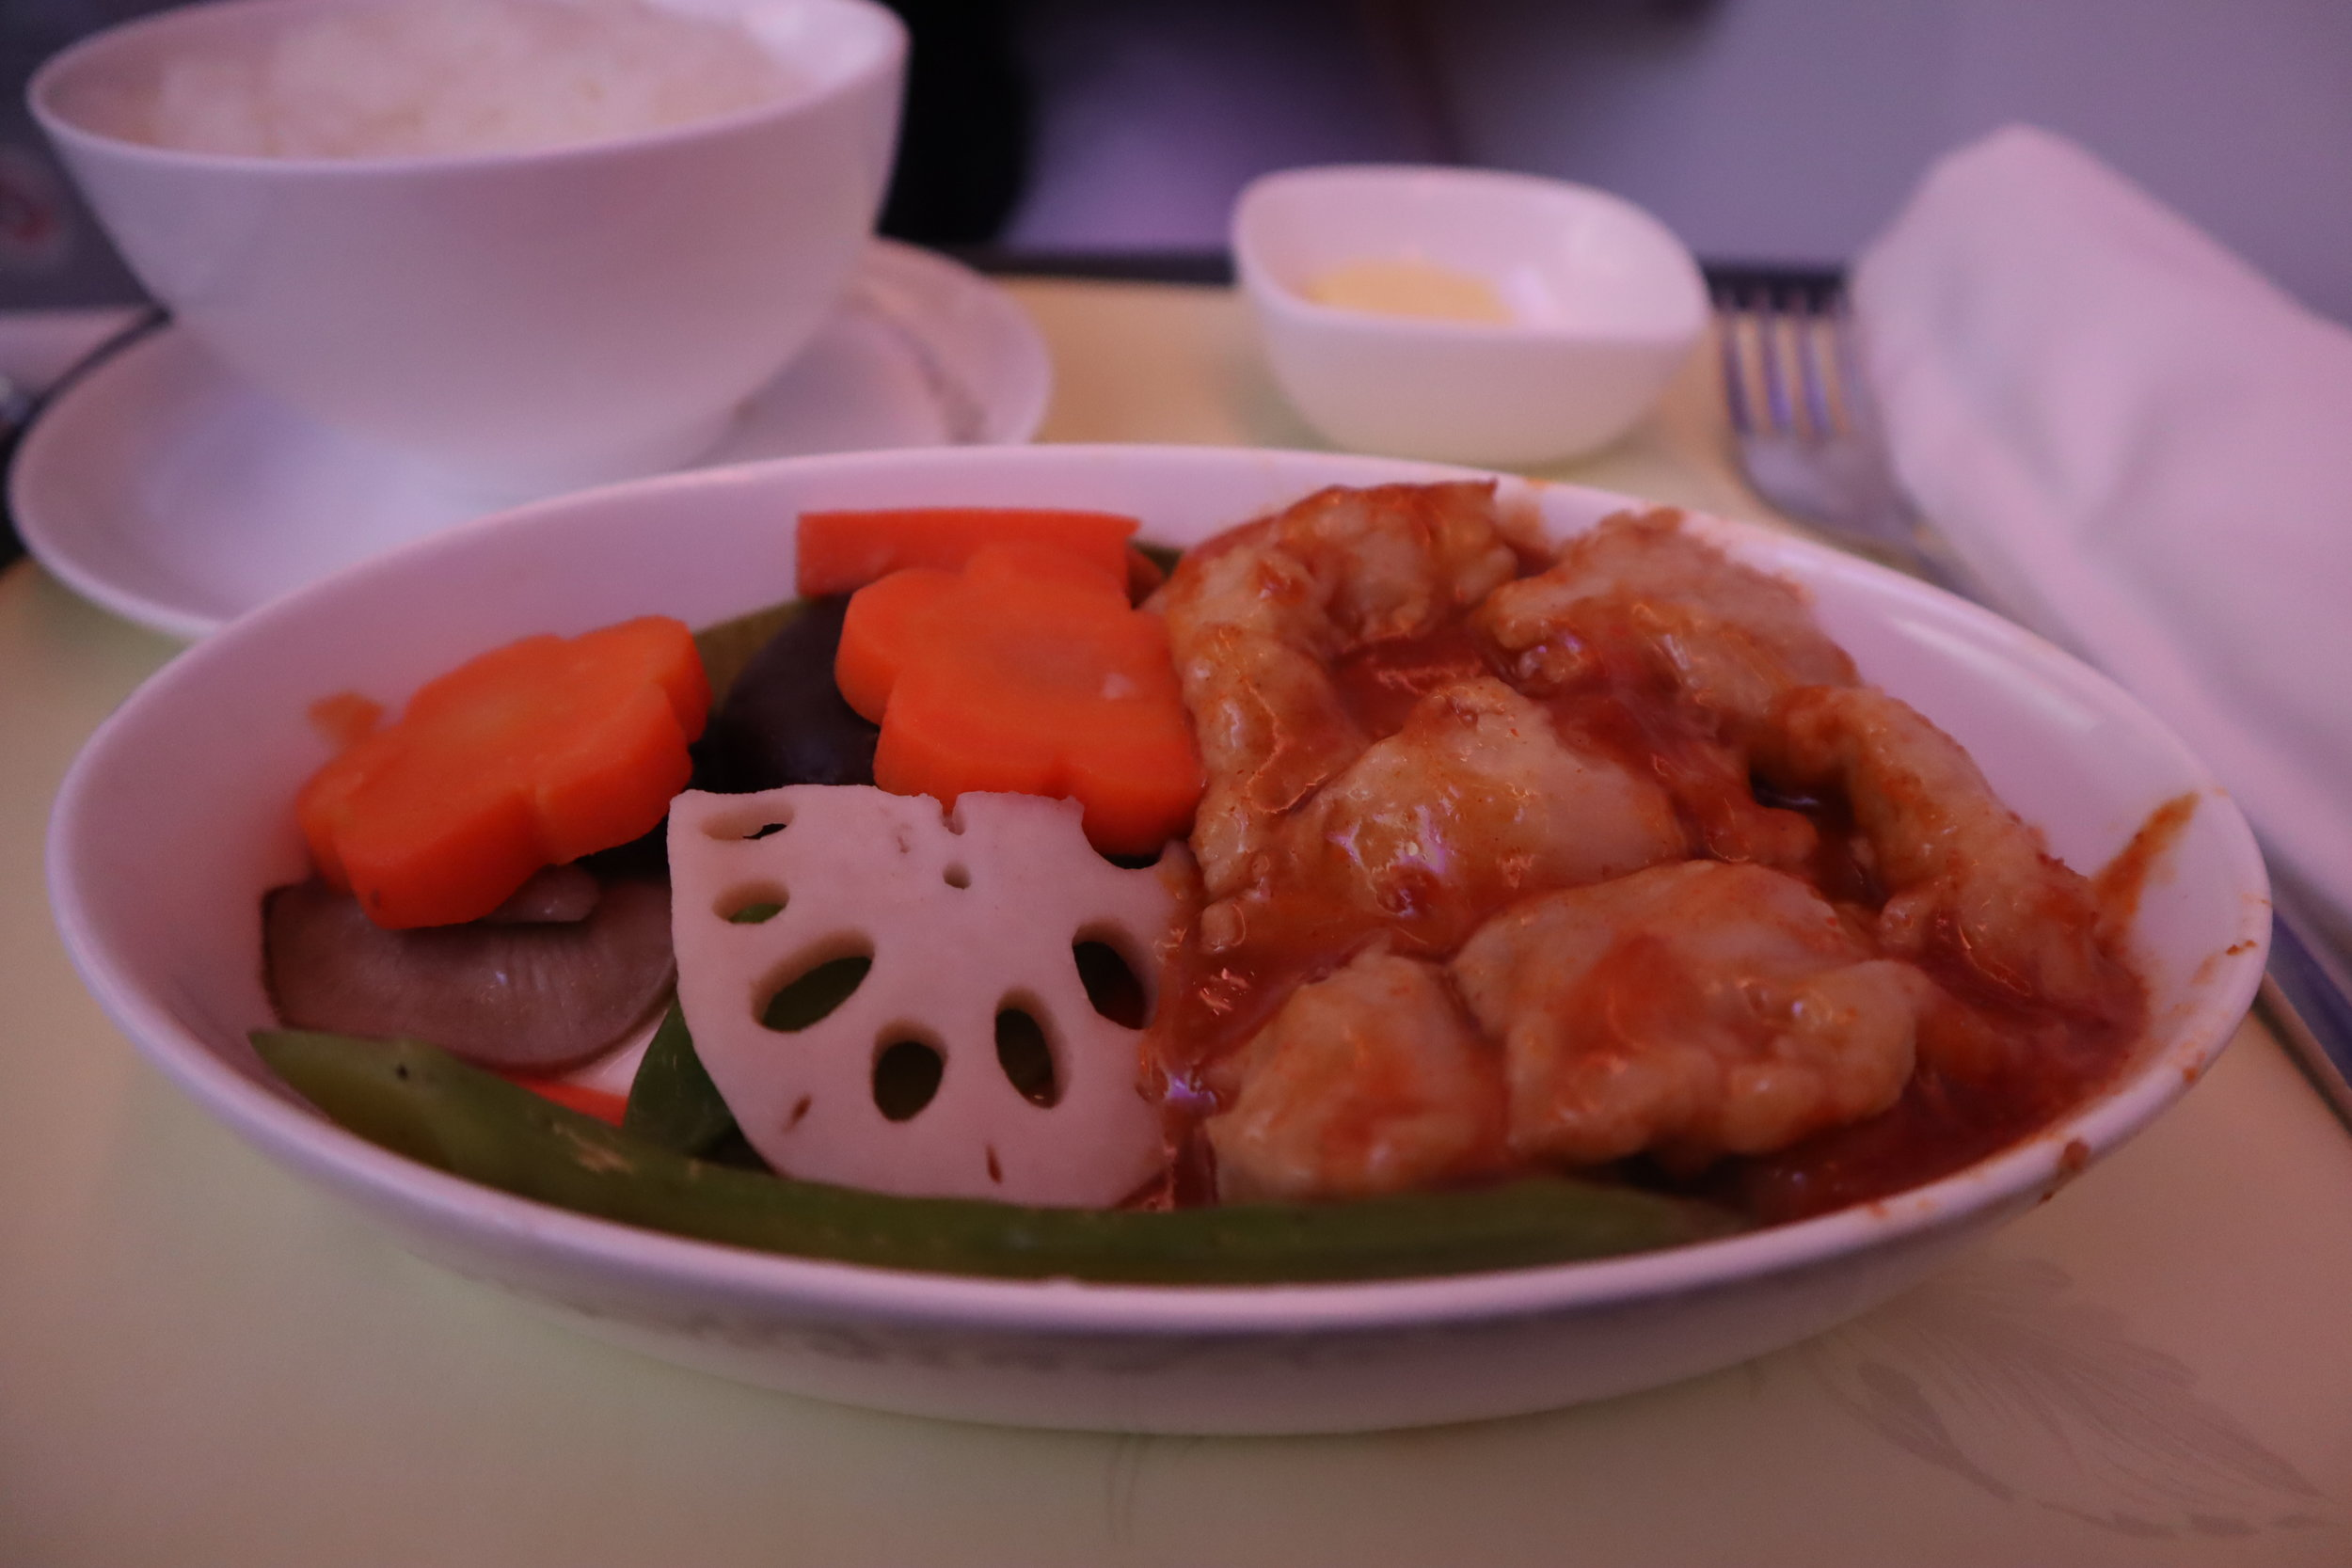 Air China business class – Sautéed spicy chicken with rice